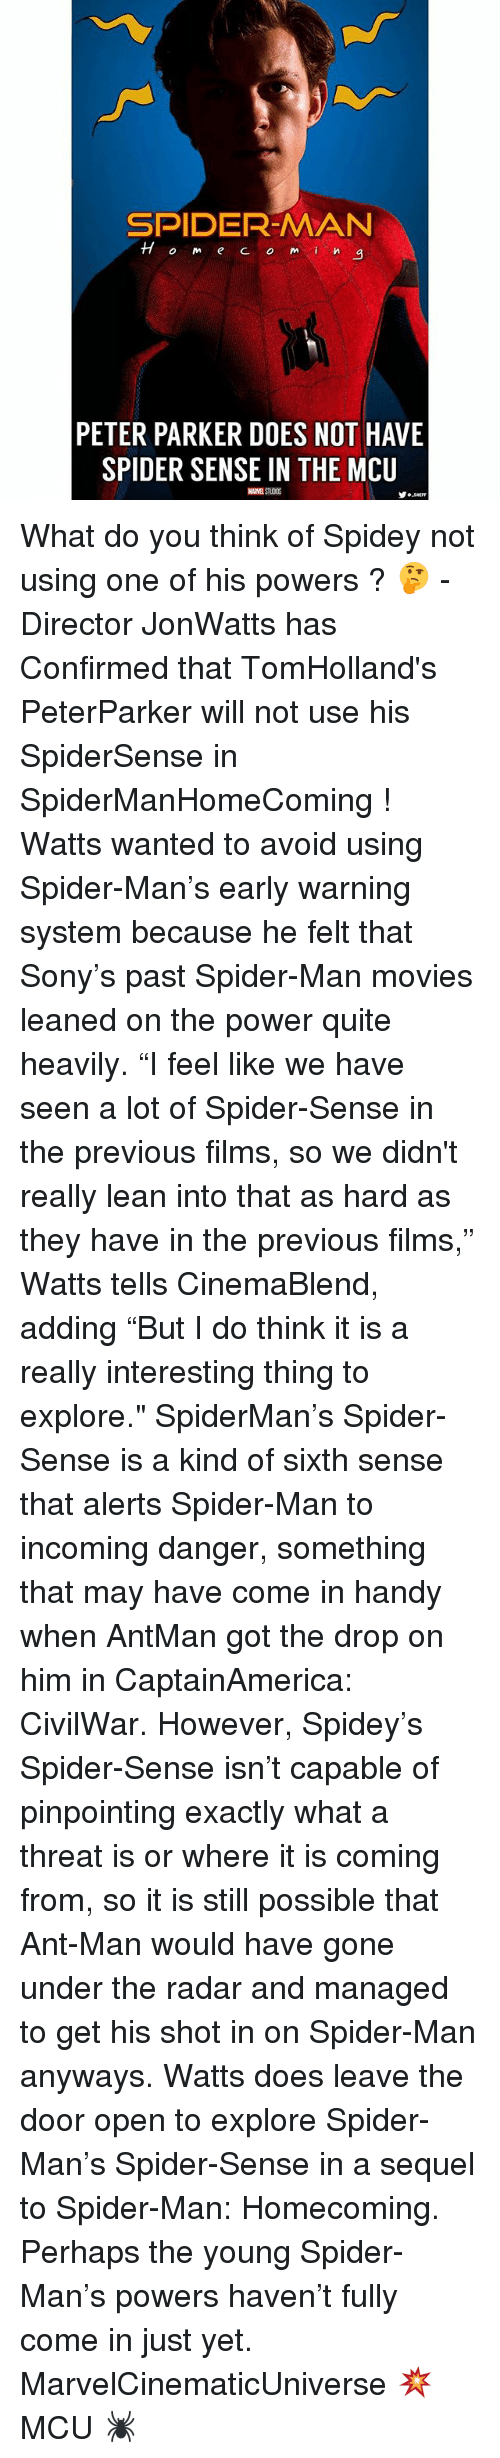 "Lean, Memes, and Movies: SPIDER-MAN  TTom e CO mi  a  PETER PARKER DOES NOT HAVE  SPIDER SENSE IN THE MCU What do you think of Spidey not using one of his powers ? 🤔 - Director JonWatts has Confirmed that TomHolland's PeterParker will not use his SpiderSense in SpiderManHomeComing ! Watts wanted to avoid using Spider-Man's early warning system because he felt that Sony's past Spider-Man movies leaned on the power quite heavily. ""I feel like we have seen a lot of Spider-Sense in the previous films, so we didn't really lean into that as hard as they have in the previous films,"" Watts tells CinemaBlend, adding ""But I do think it is a really interesting thing to explore."" SpiderMan's Spider-Sense is a kind of sixth sense that alerts Spider-Man to incoming danger, something that may have come in handy when AntMan got the drop on him in CaptainAmerica: CivilWar. However, Spidey's Spider-Sense isn't capable of pinpointing exactly what a threat is or where it is coming from, so it is still possible that Ant-Man would have gone under the radar and managed to get his shot in on Spider-Man anyways. Watts does leave the door open to explore Spider-Man's Spider-Sense in a sequel to Spider-Man: Homecoming. Perhaps the young Spider-Man's powers haven't fully come in just yet. MarvelCinematicUniverse 💥 MCU 🕷"